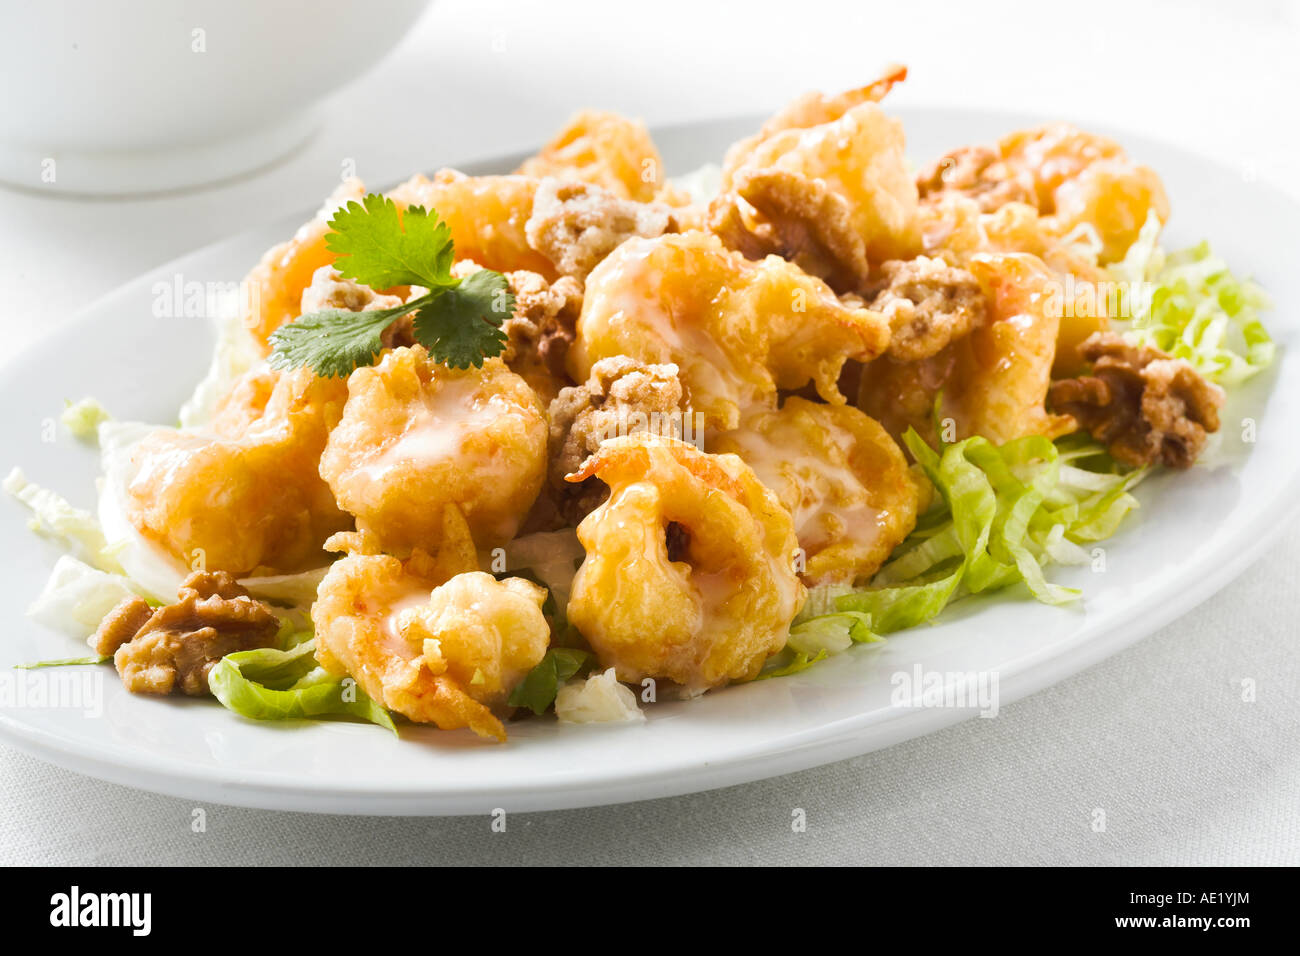 Honey walnut crispy shrimp prawn mayonaise oyster sauce chinese food with green onion dish white plate delicious - Stock Image